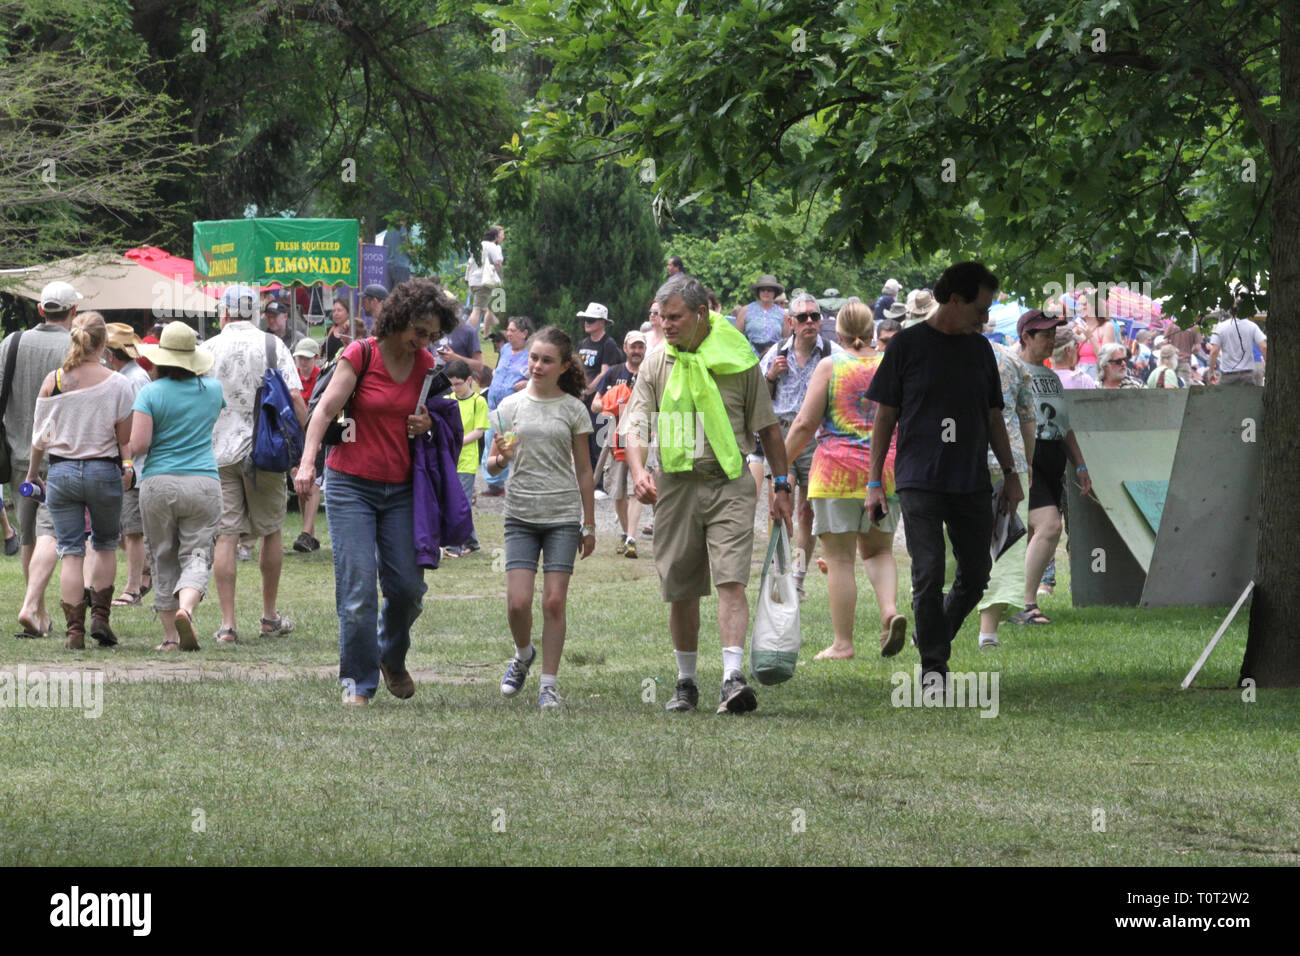 Concert goers are shown on the move during a summer outdoor music festival event. Stock Photo